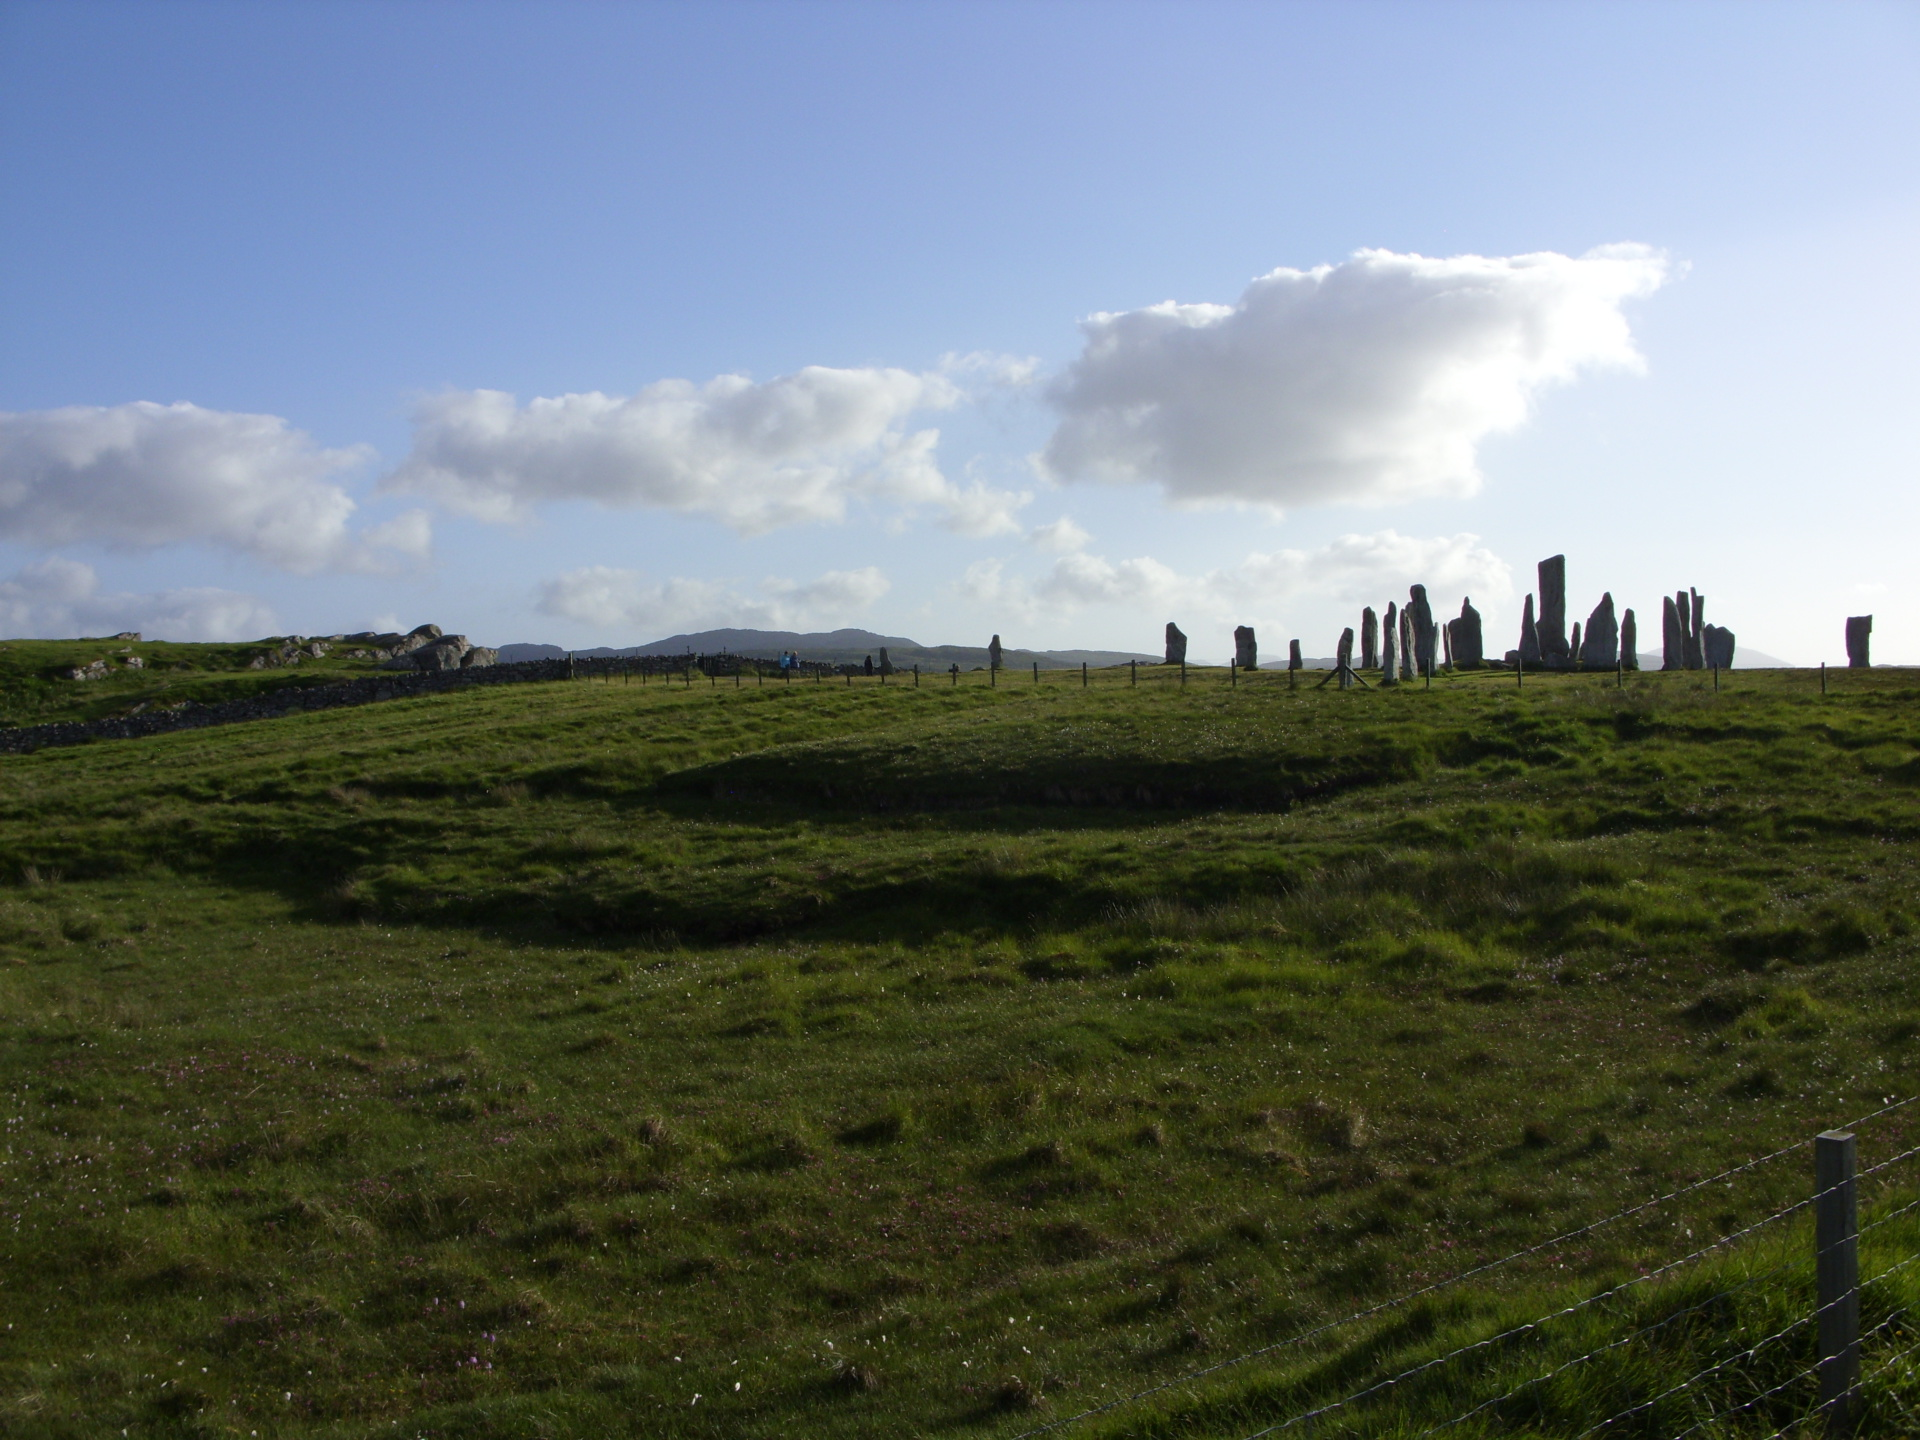 Bed and Breakfast Accommodation in Callanish Isle of Lewis, Outer Hebrides, Scotland, near The Callanish Stones